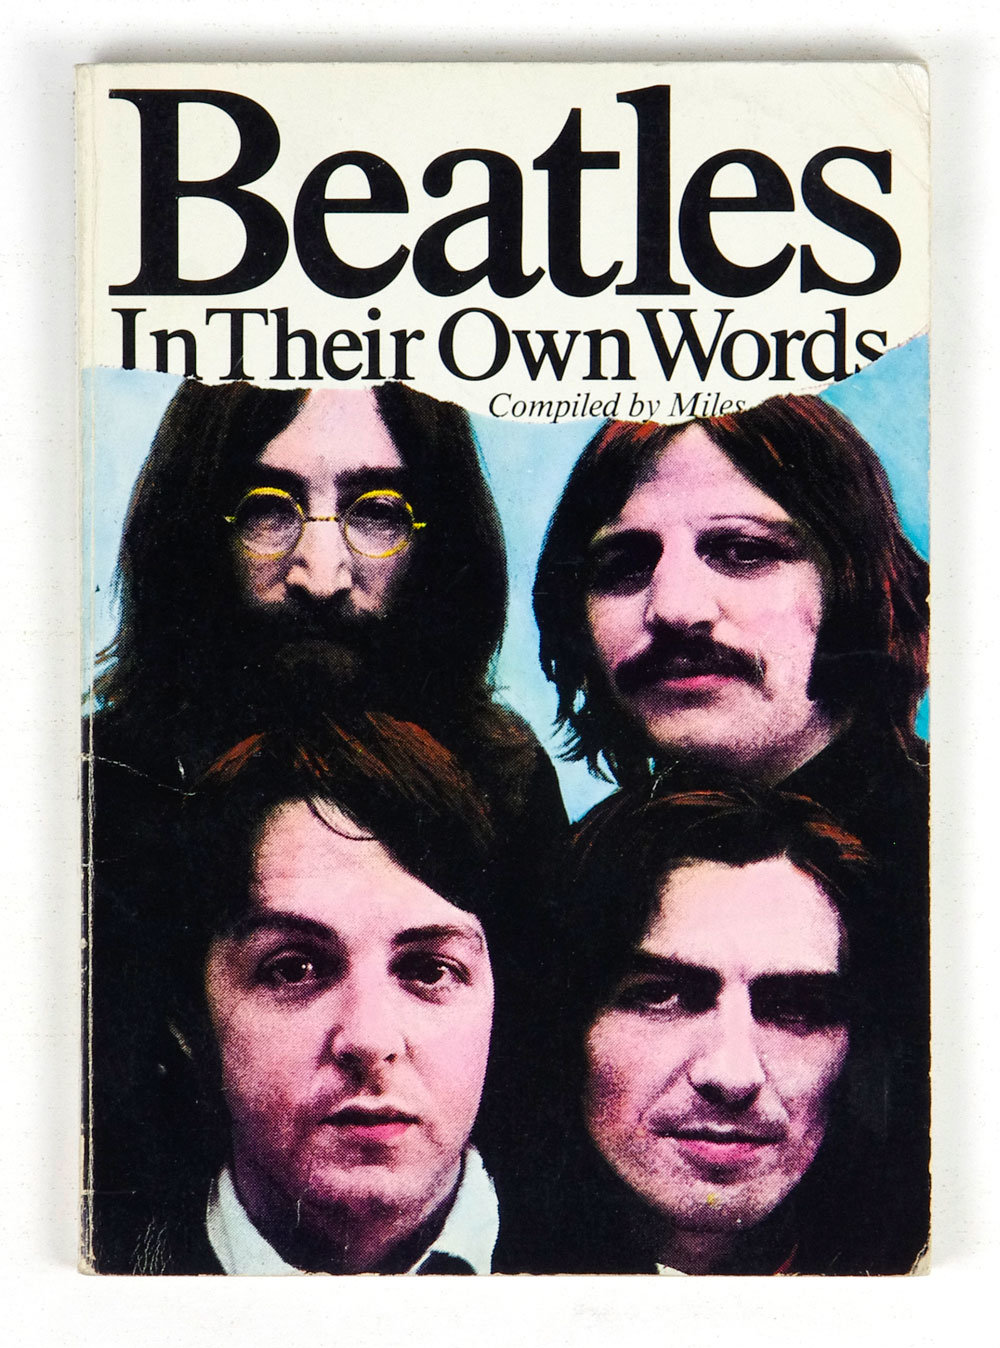 The Beatles In Their Own Words 1978 softcover